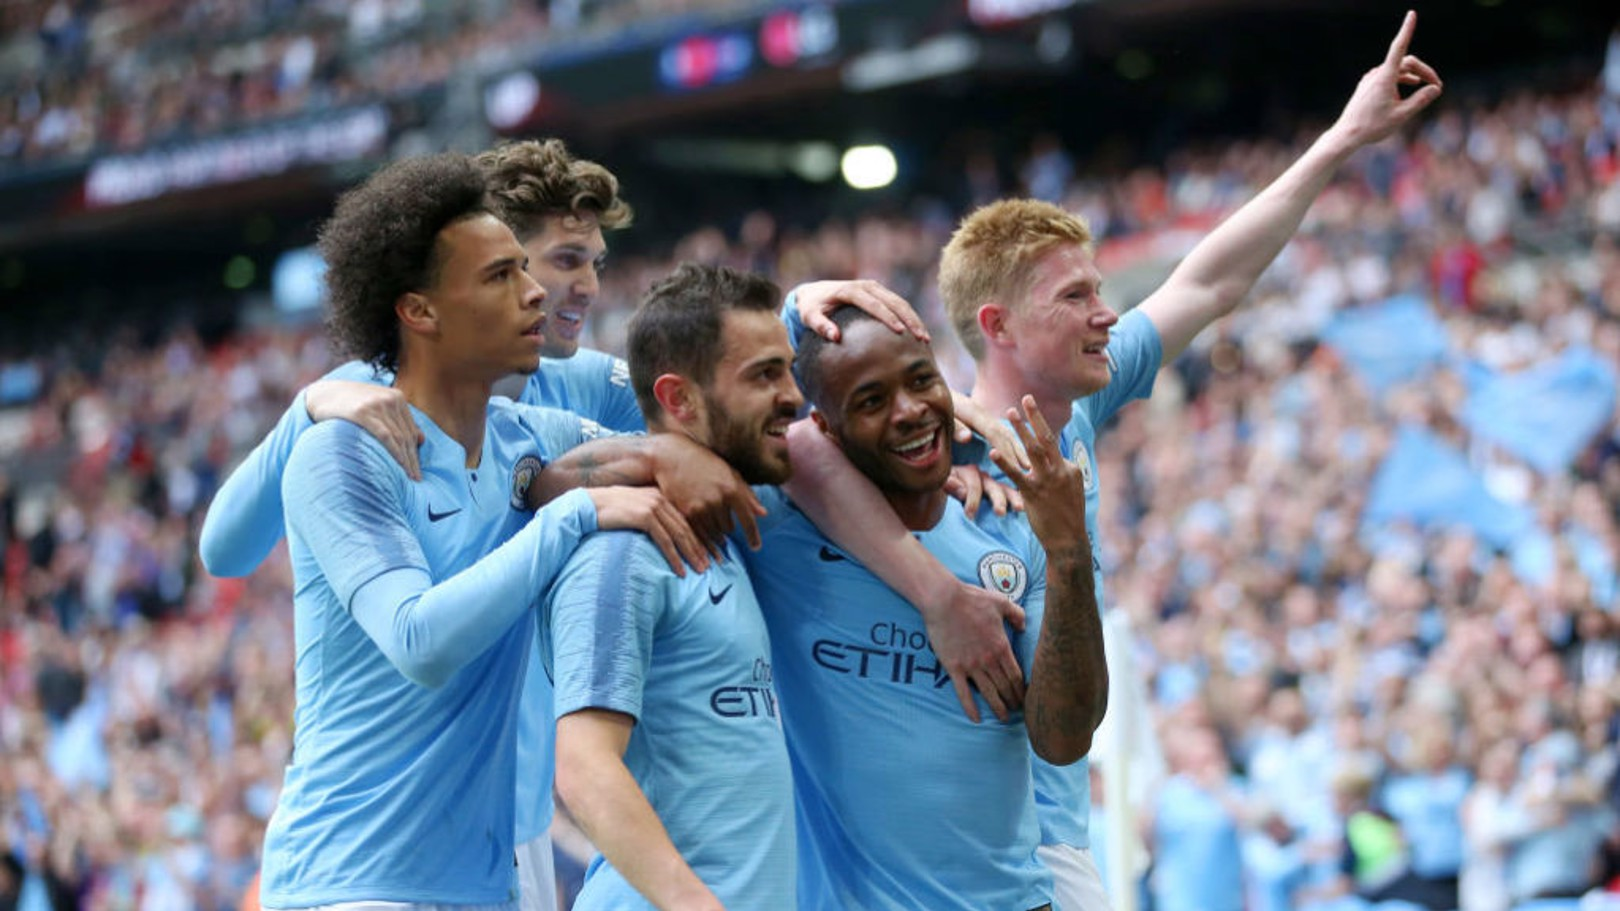 UEFA SQUAD OF THE SEASON: De Bruyne and Sterling have both been selected